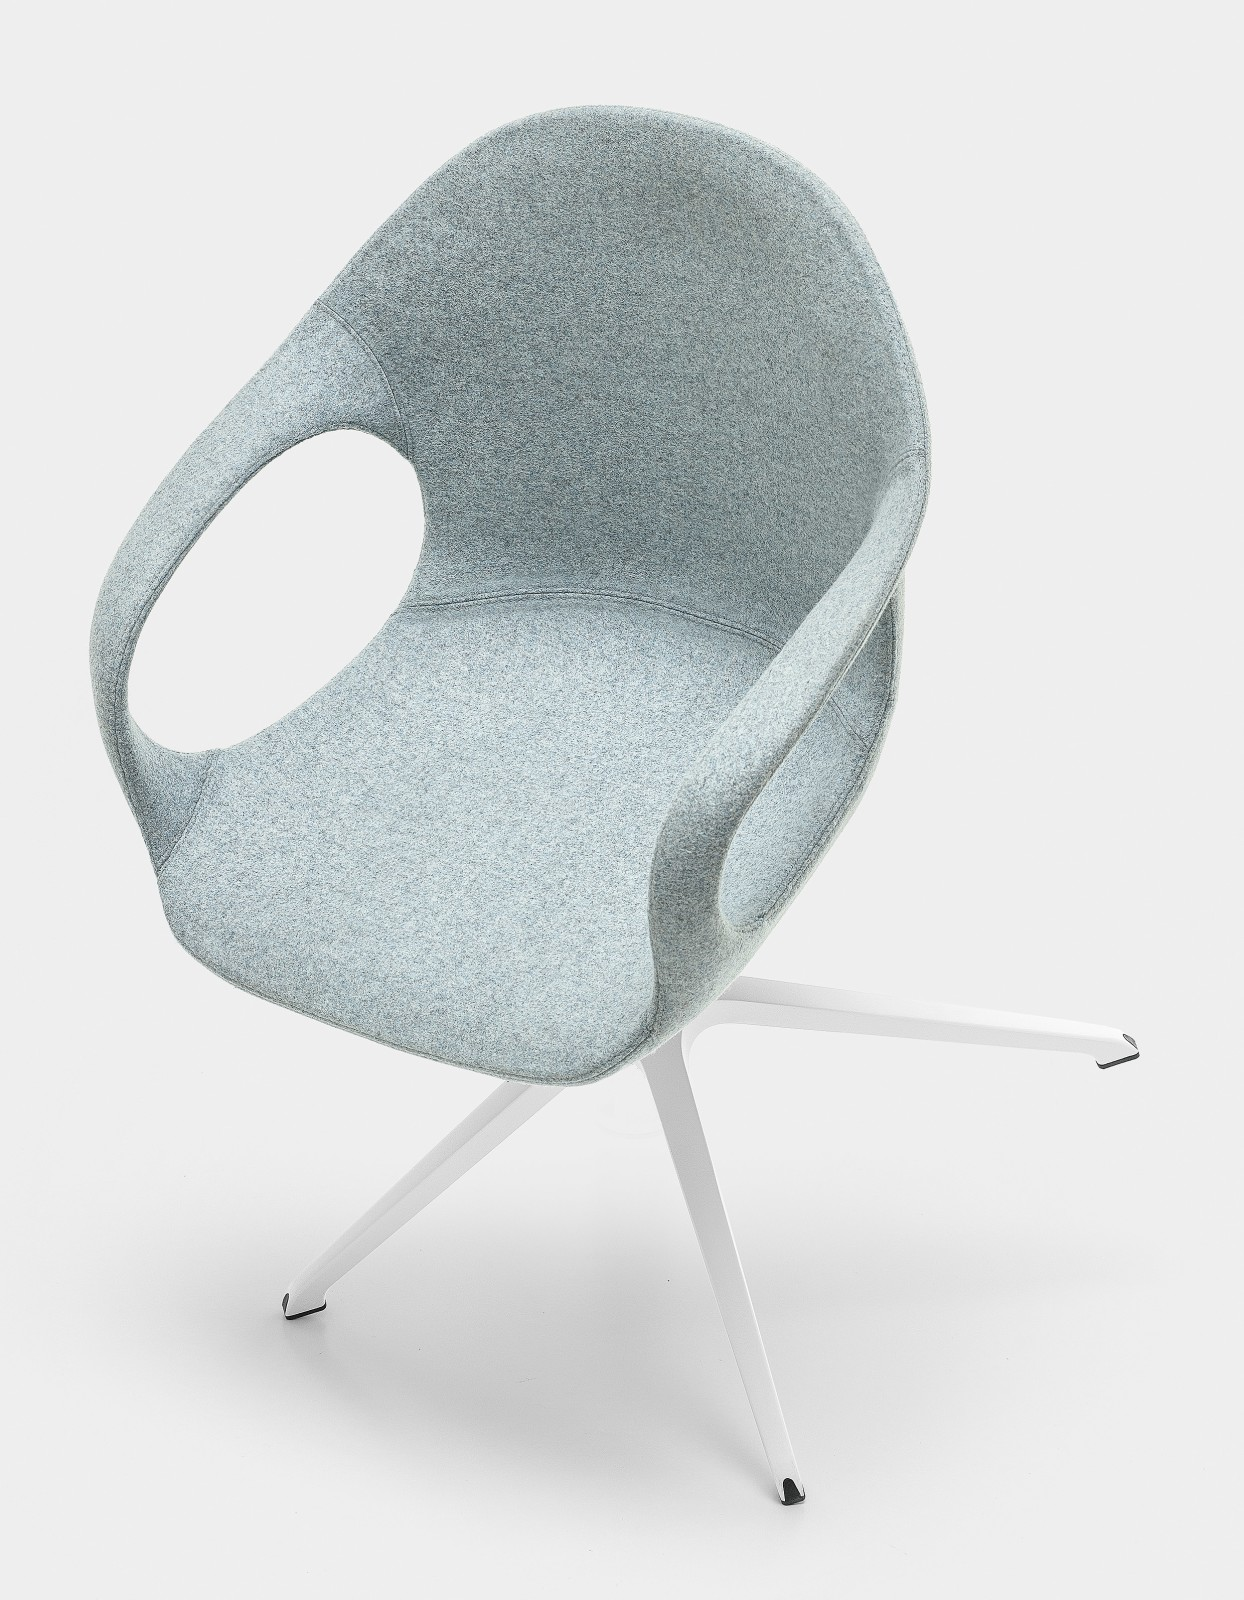 Elephant Swivel Trestle Armchair - Upholstered Seat Lacquered Steel White, Divina MD 813